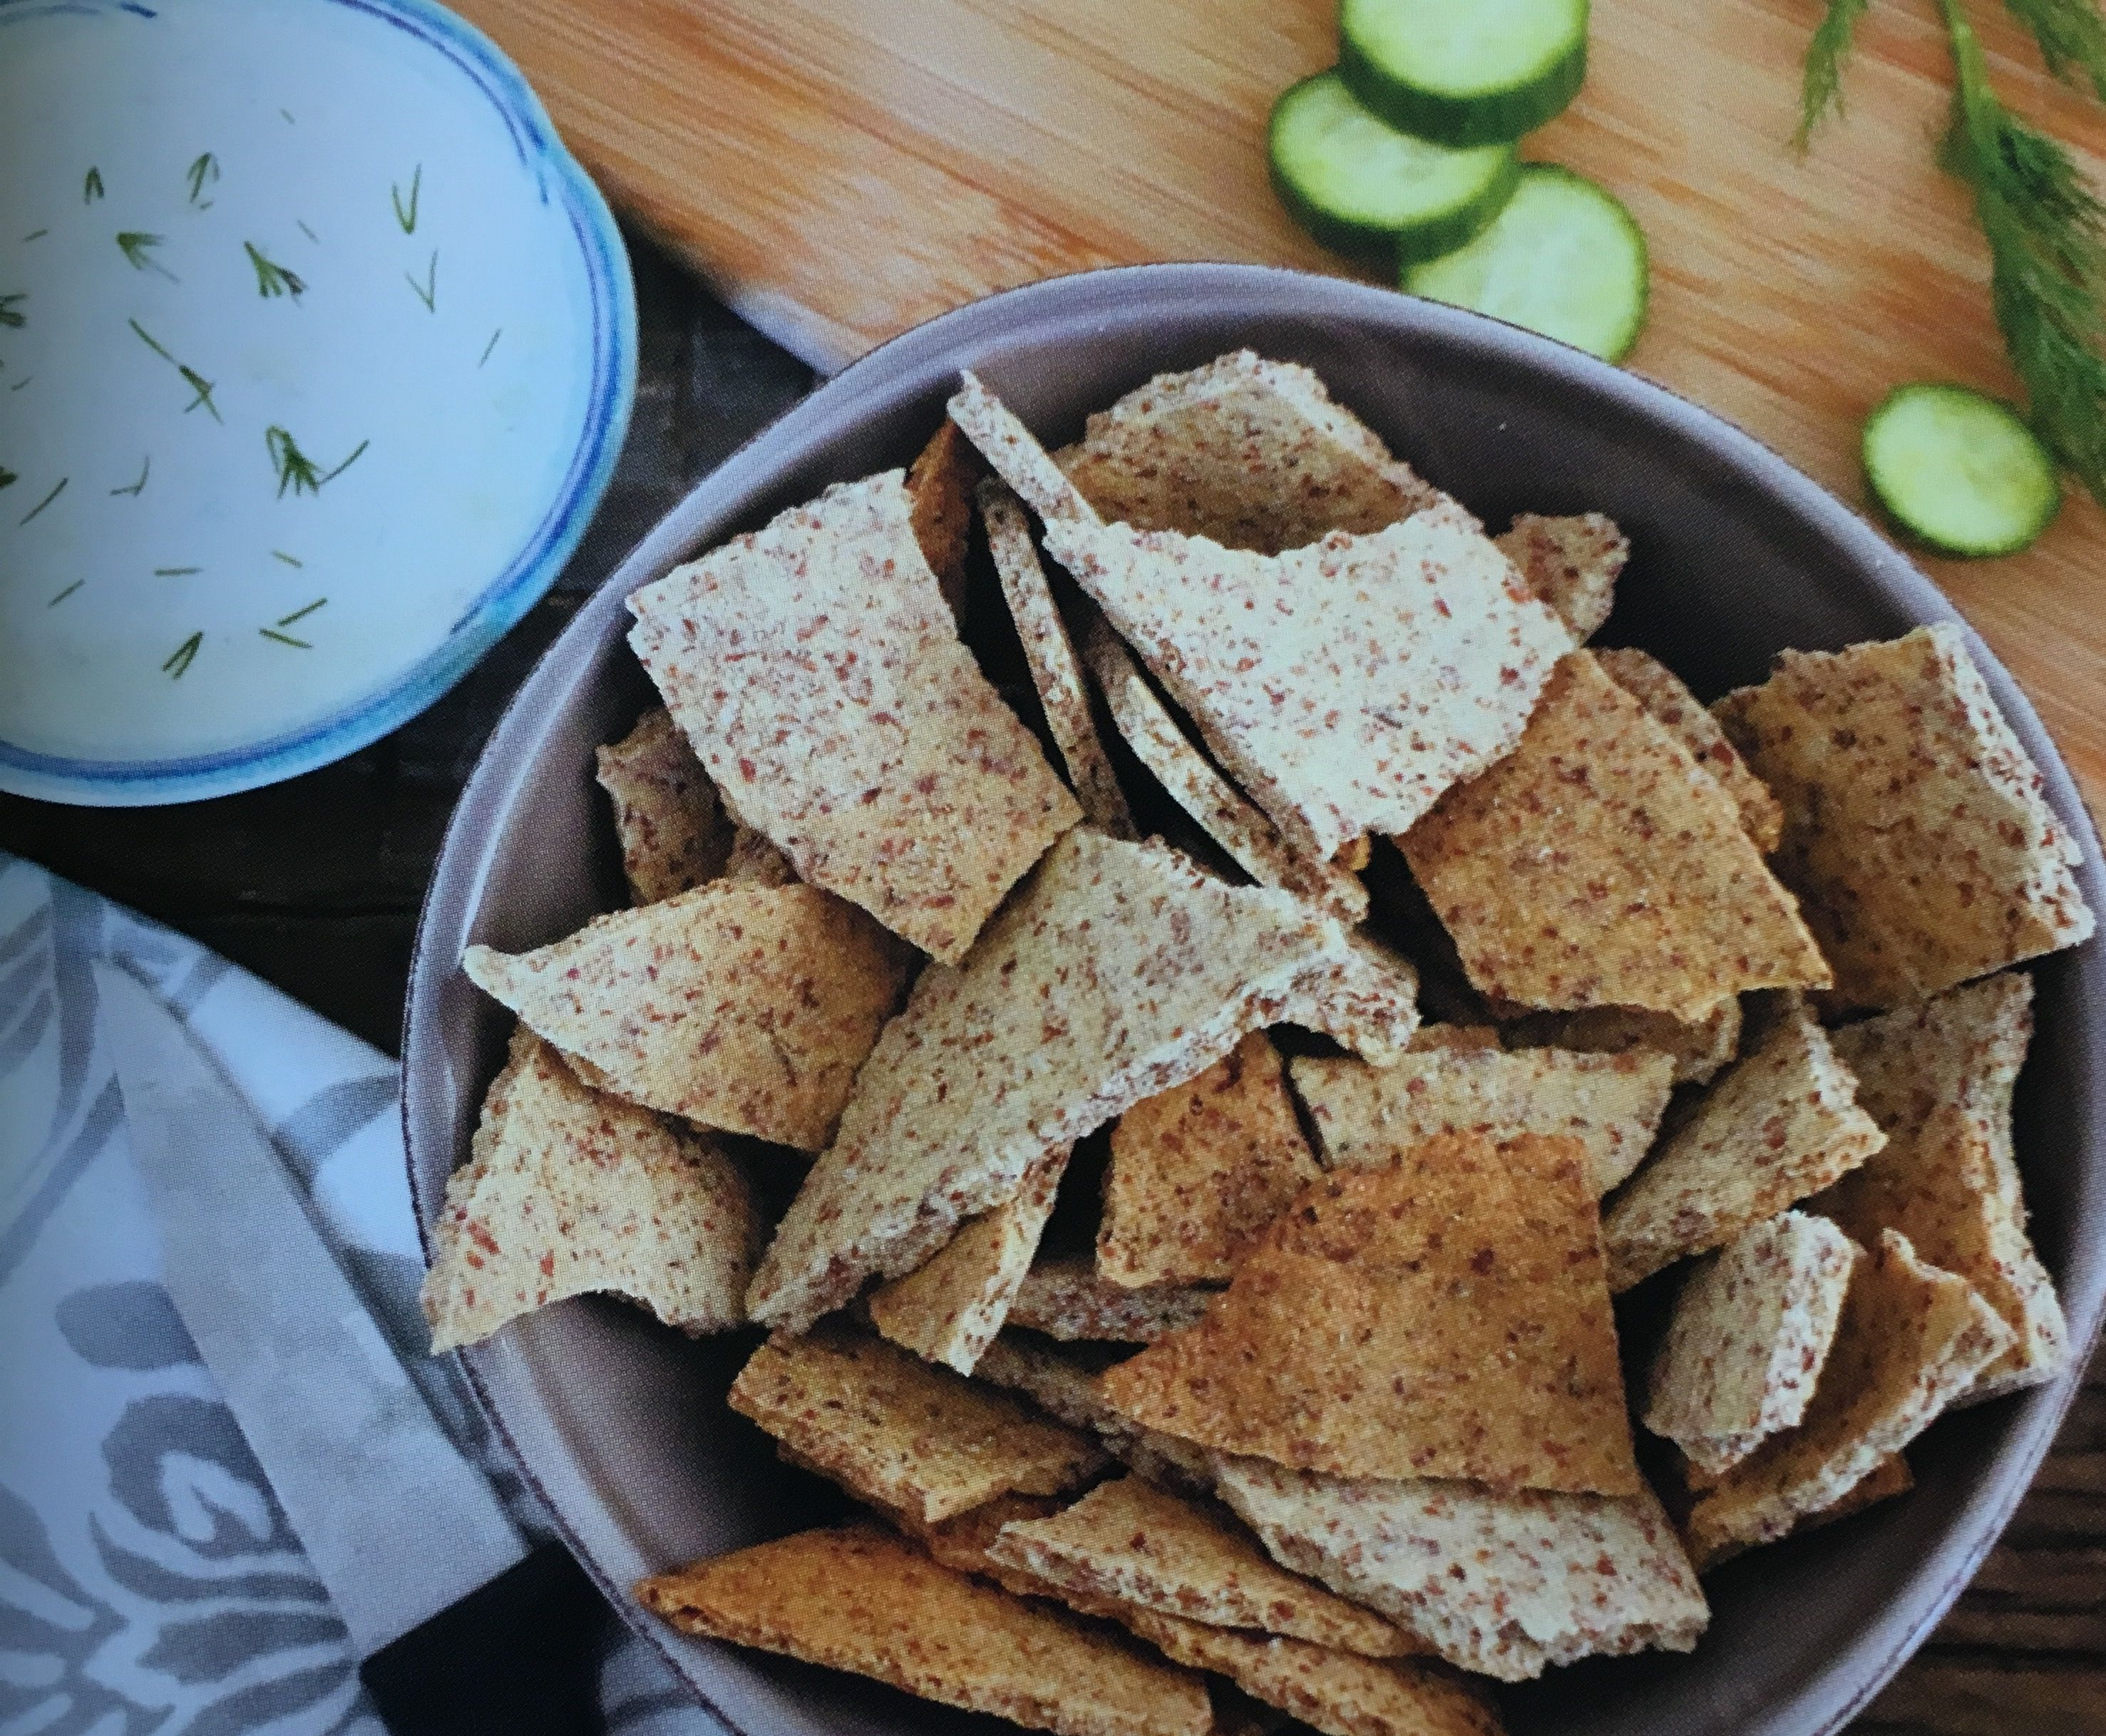 Almond meal pita chips #eathappy